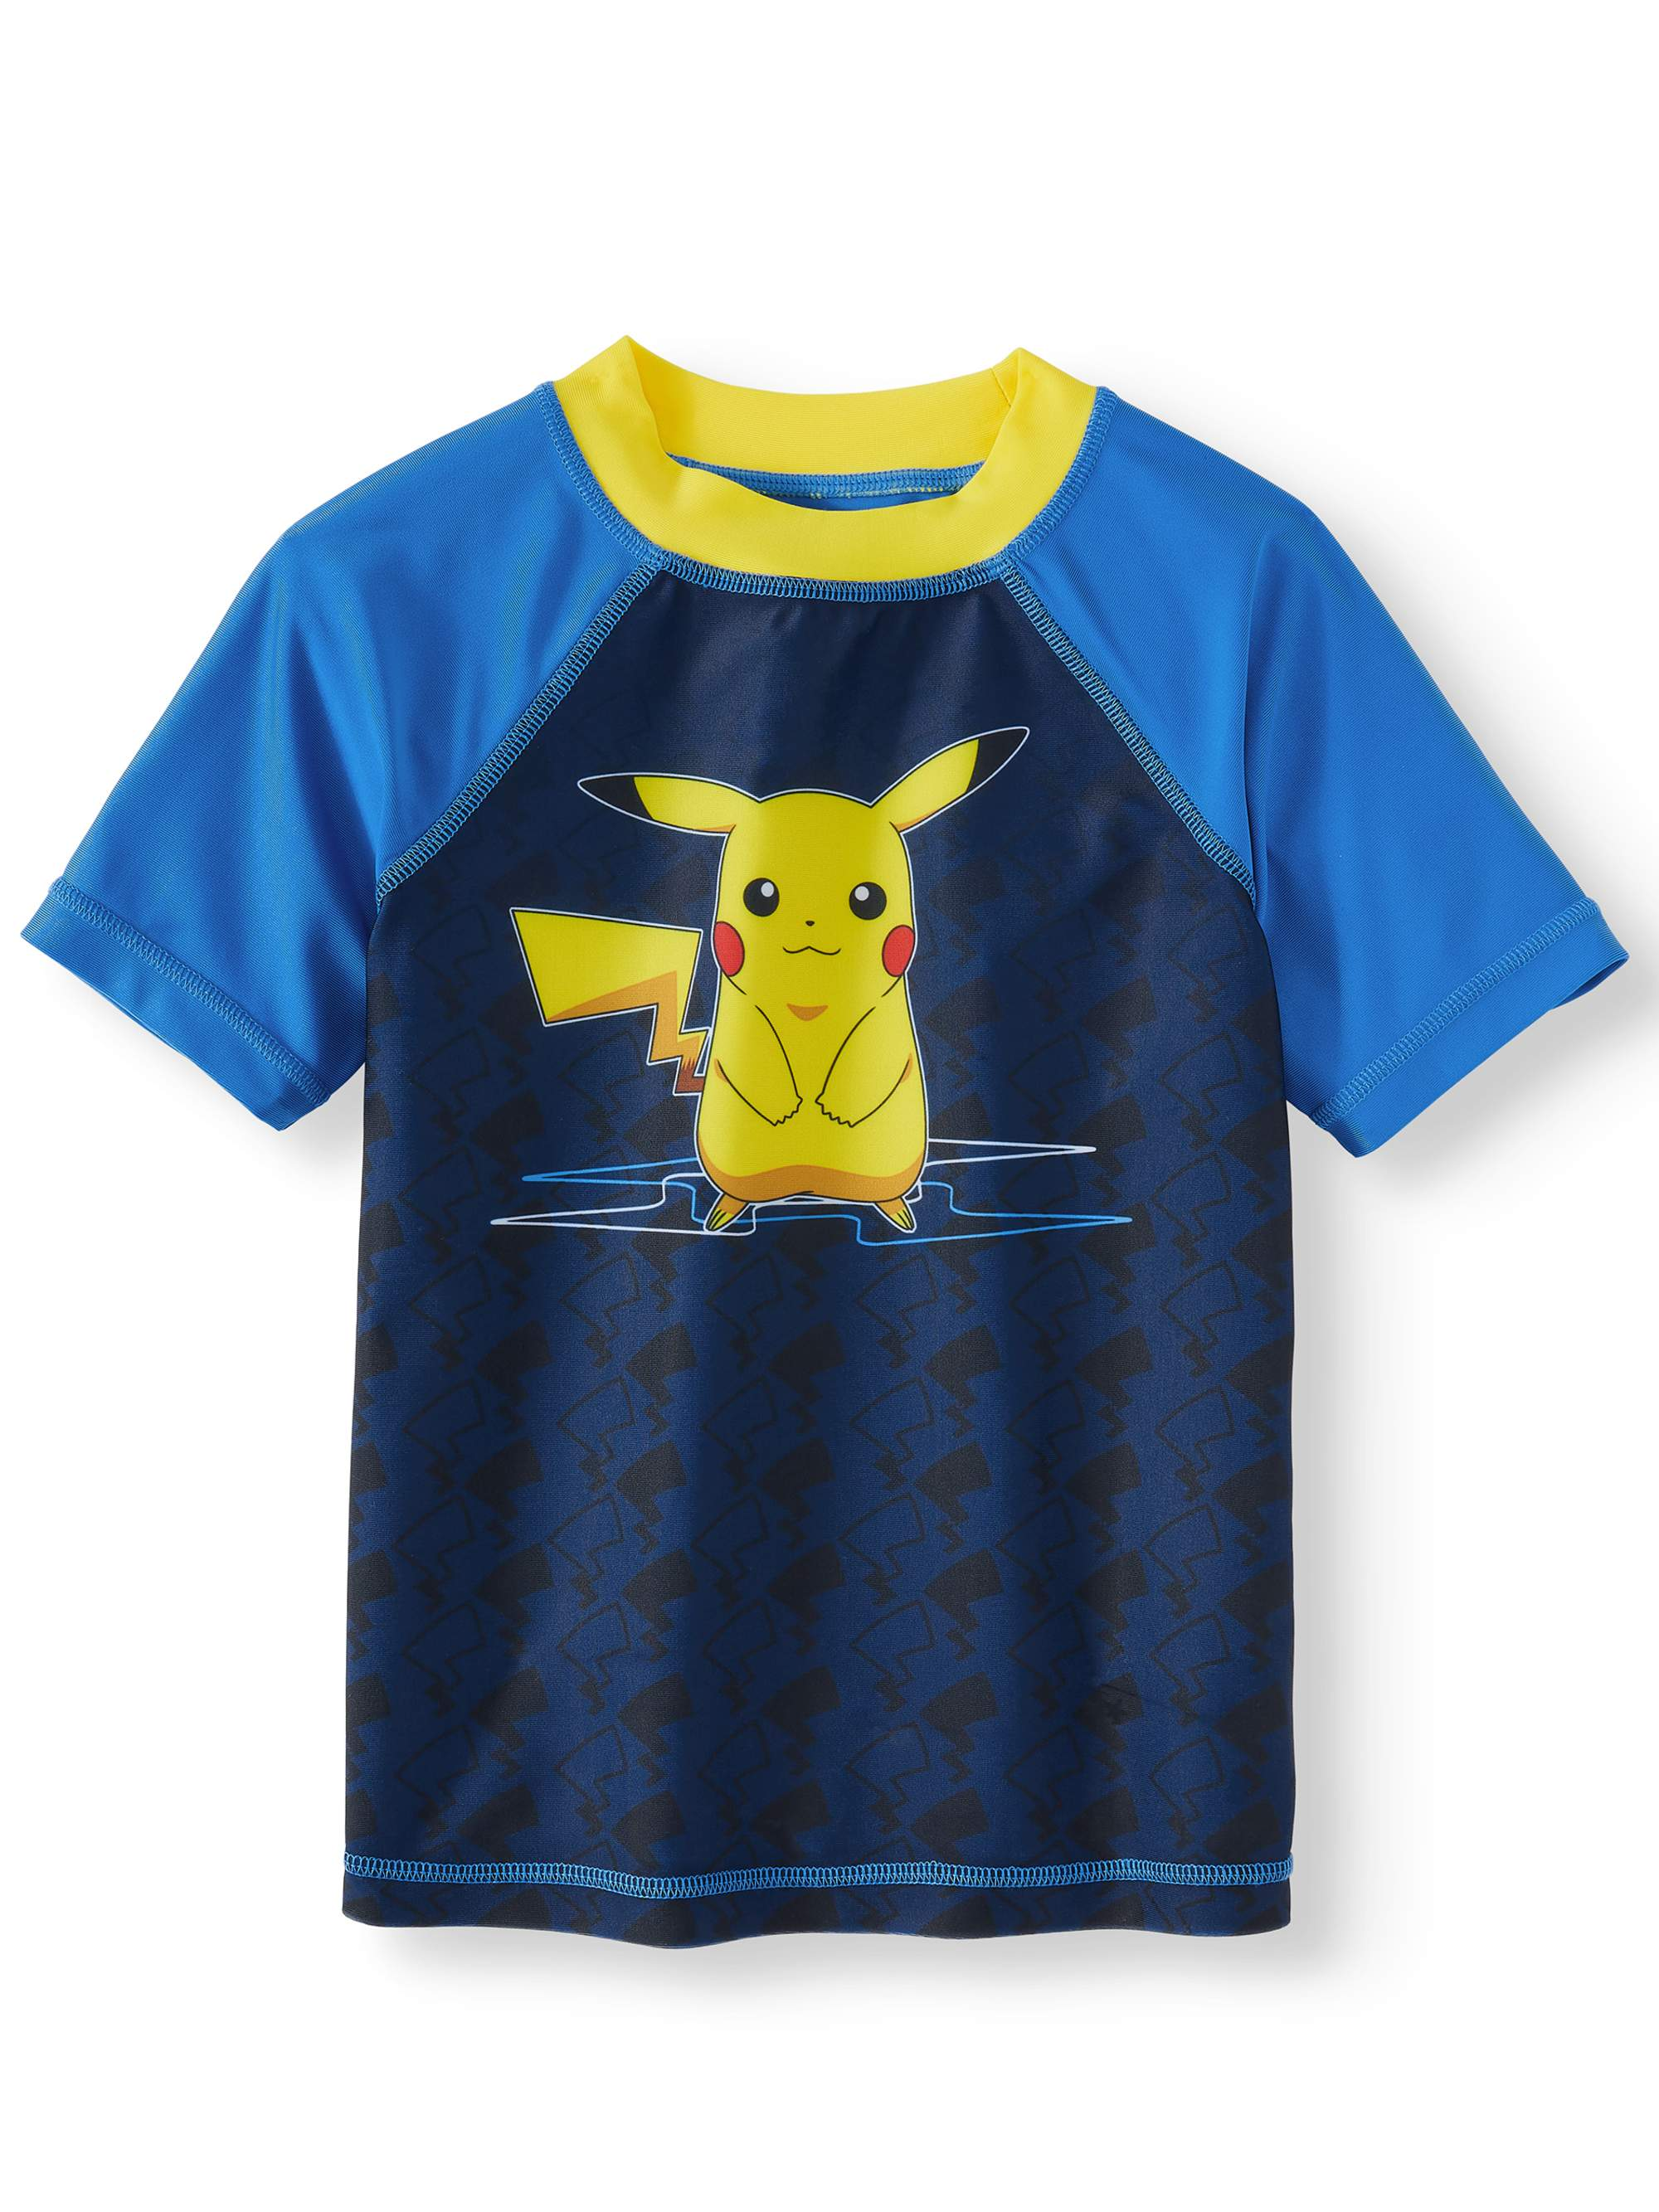 Pokémon Big Boys' Pikachu Rash Guard Swim Shirt- Blue/Yellow